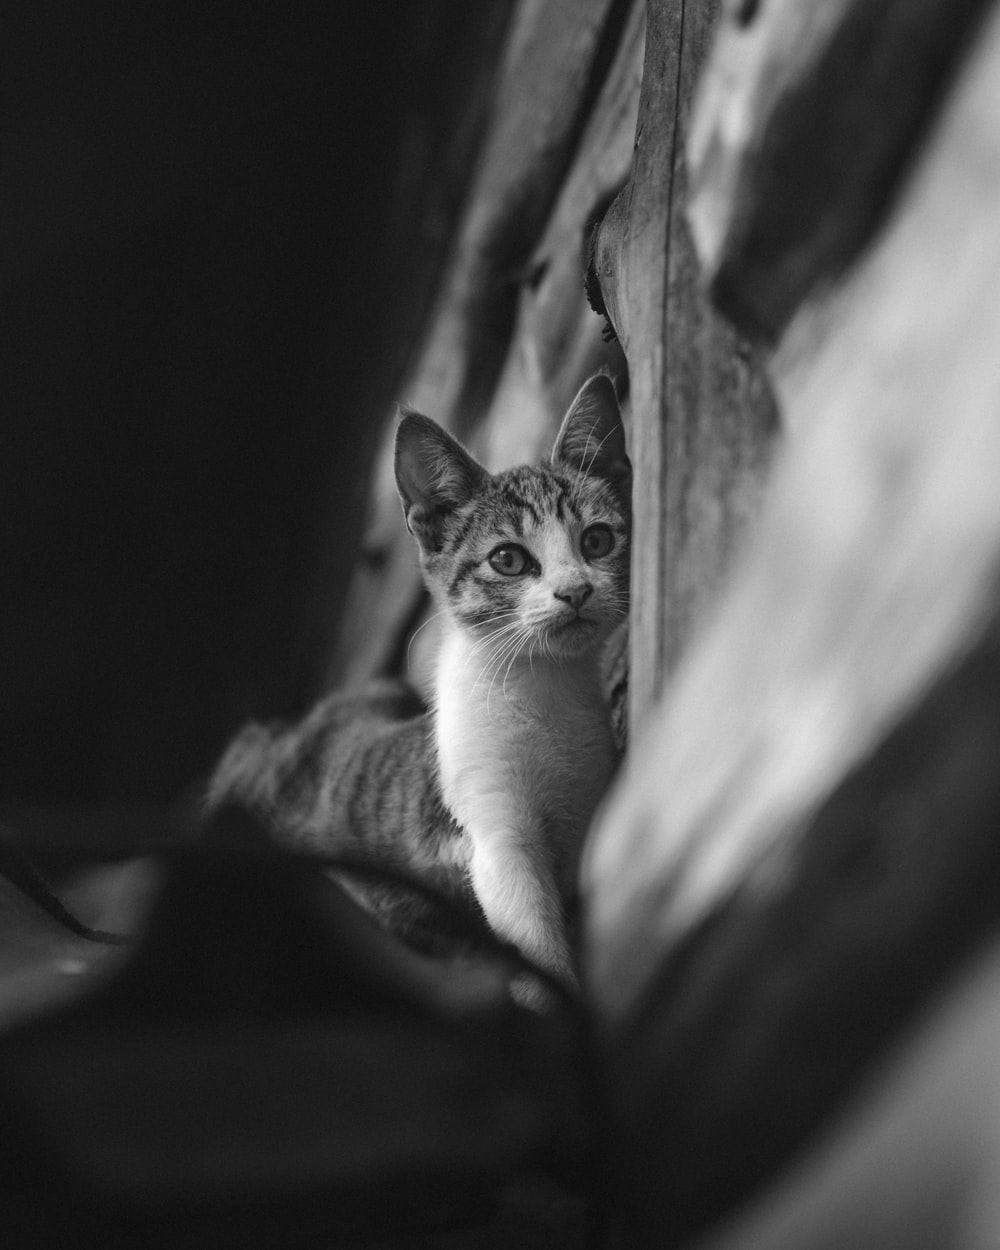 grayscale photo of cat on table